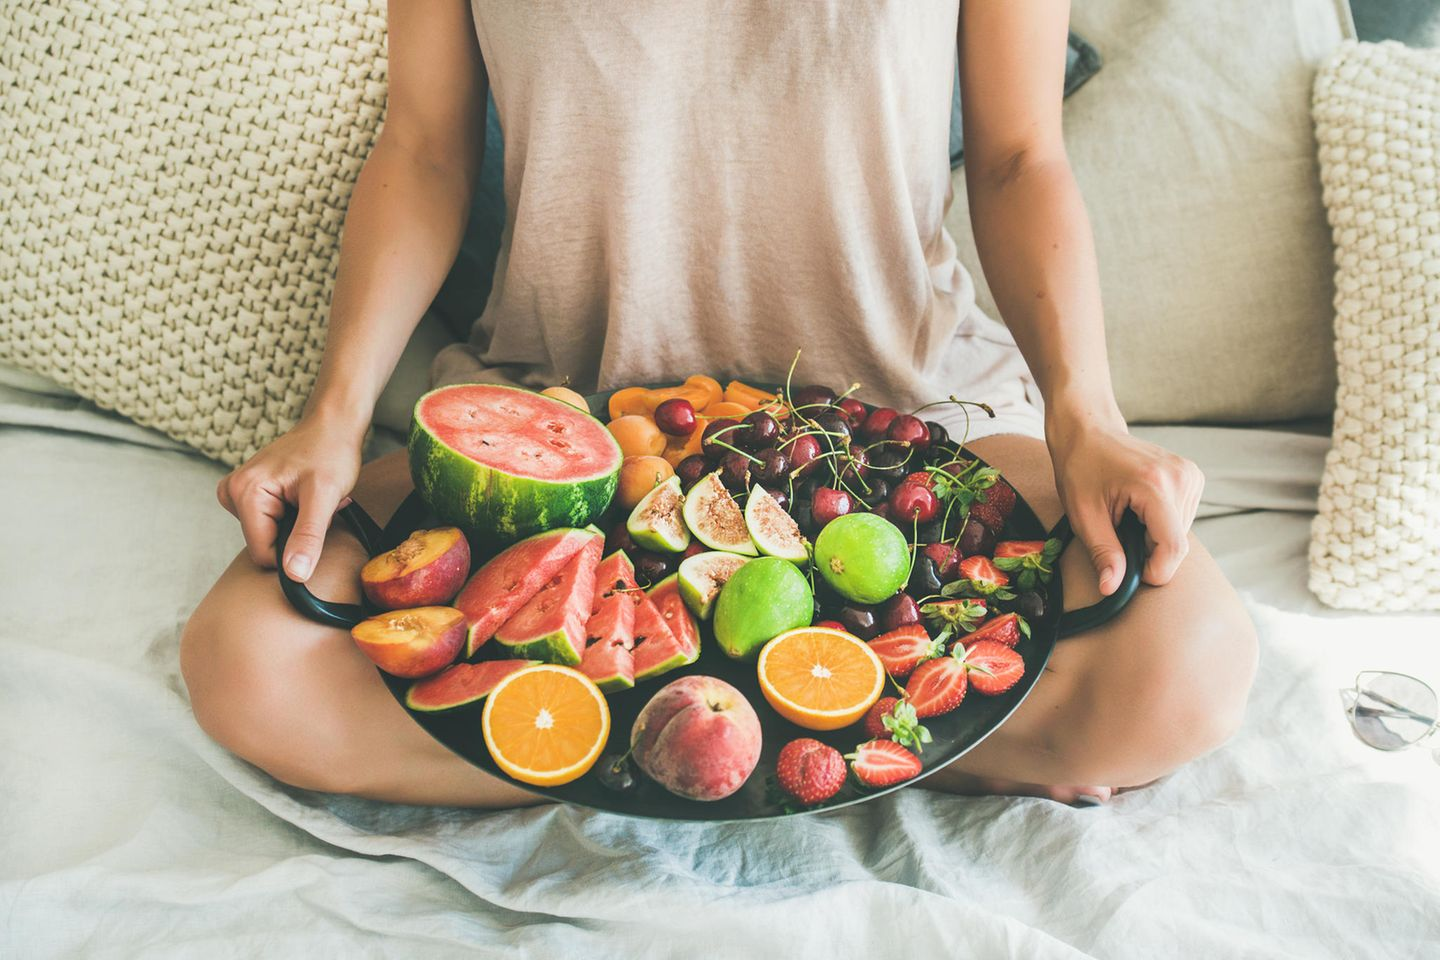 Detox Plan: Eat healthy for 7 days